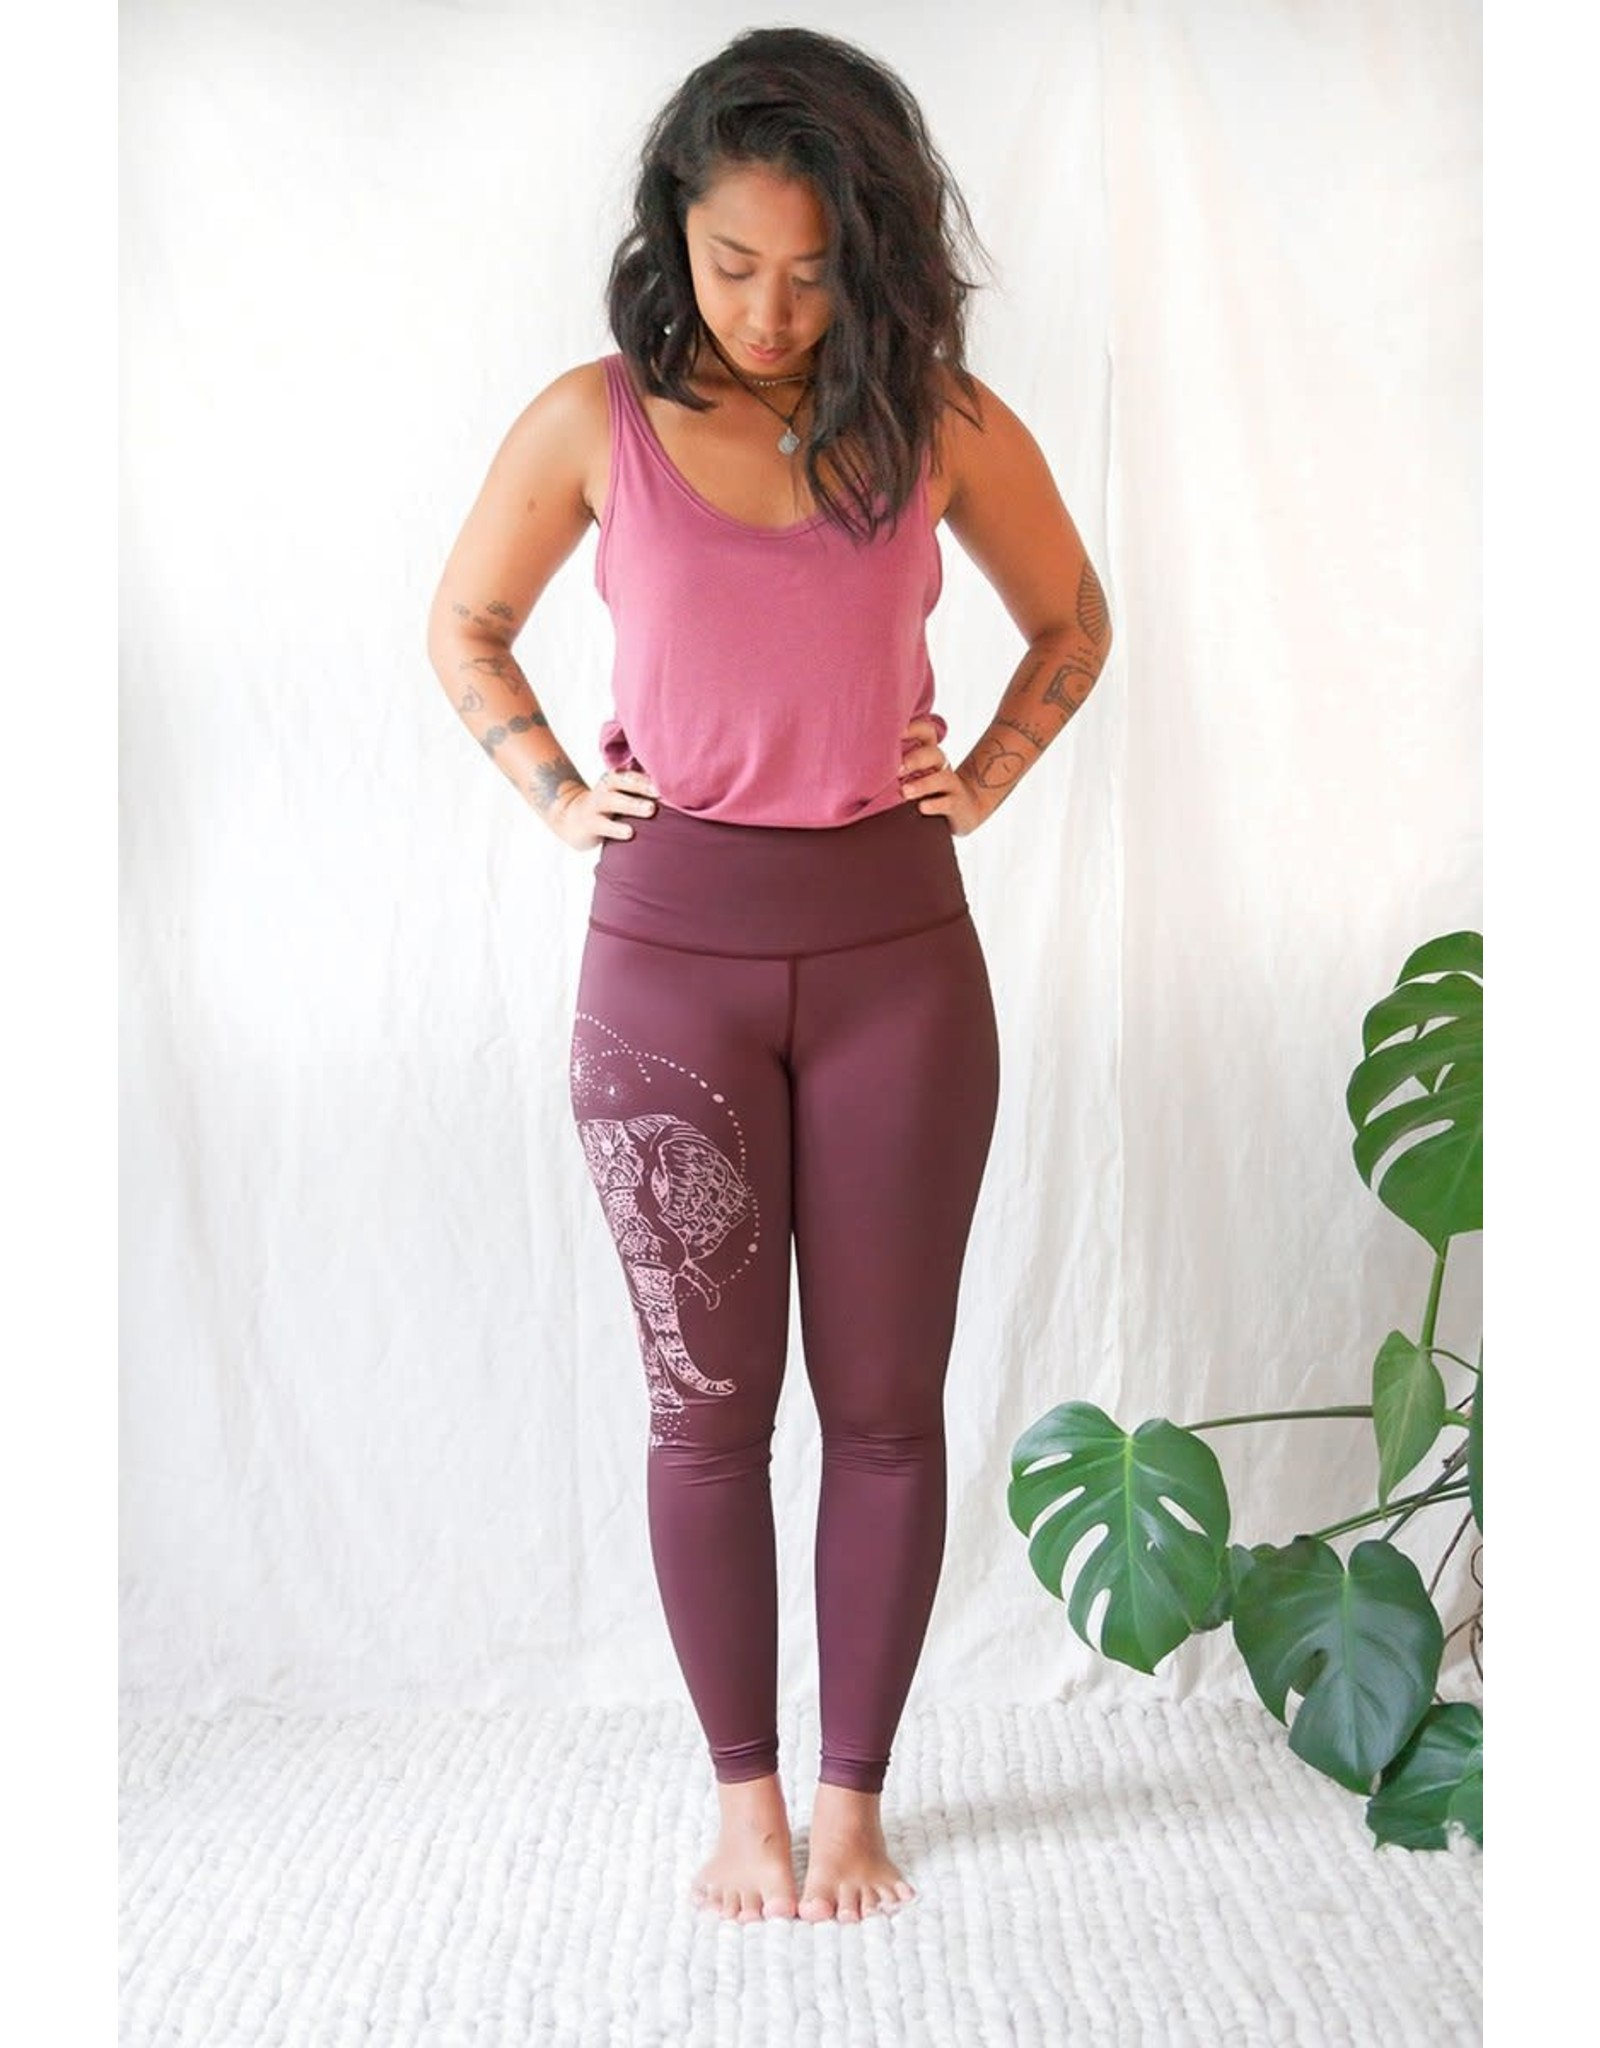 Rose Buddha Elephant leggings